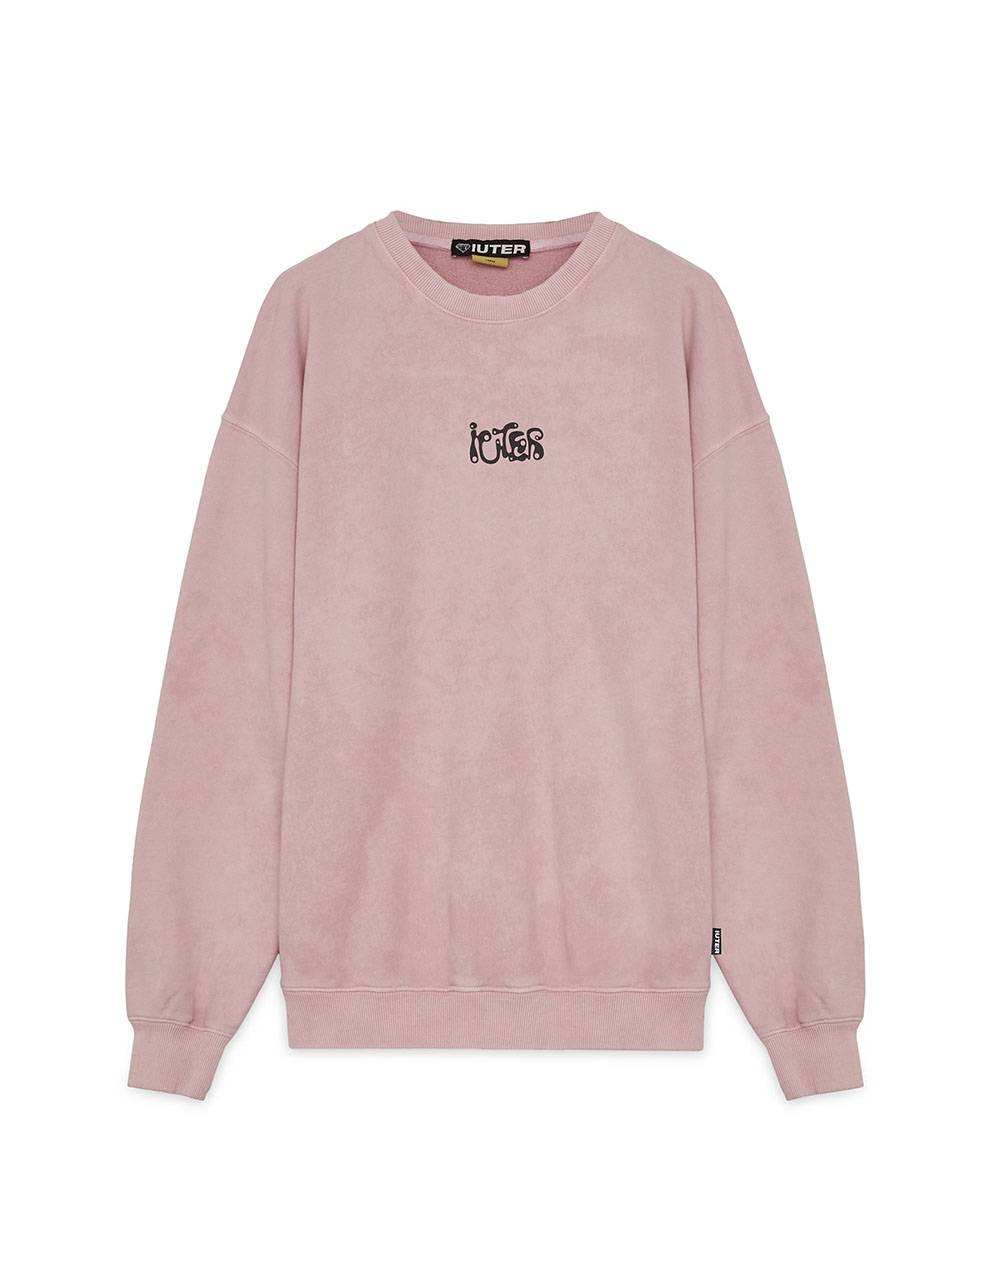 Iuter Take more crewneck sweater - Pink IUTER Sweater 109,00 €